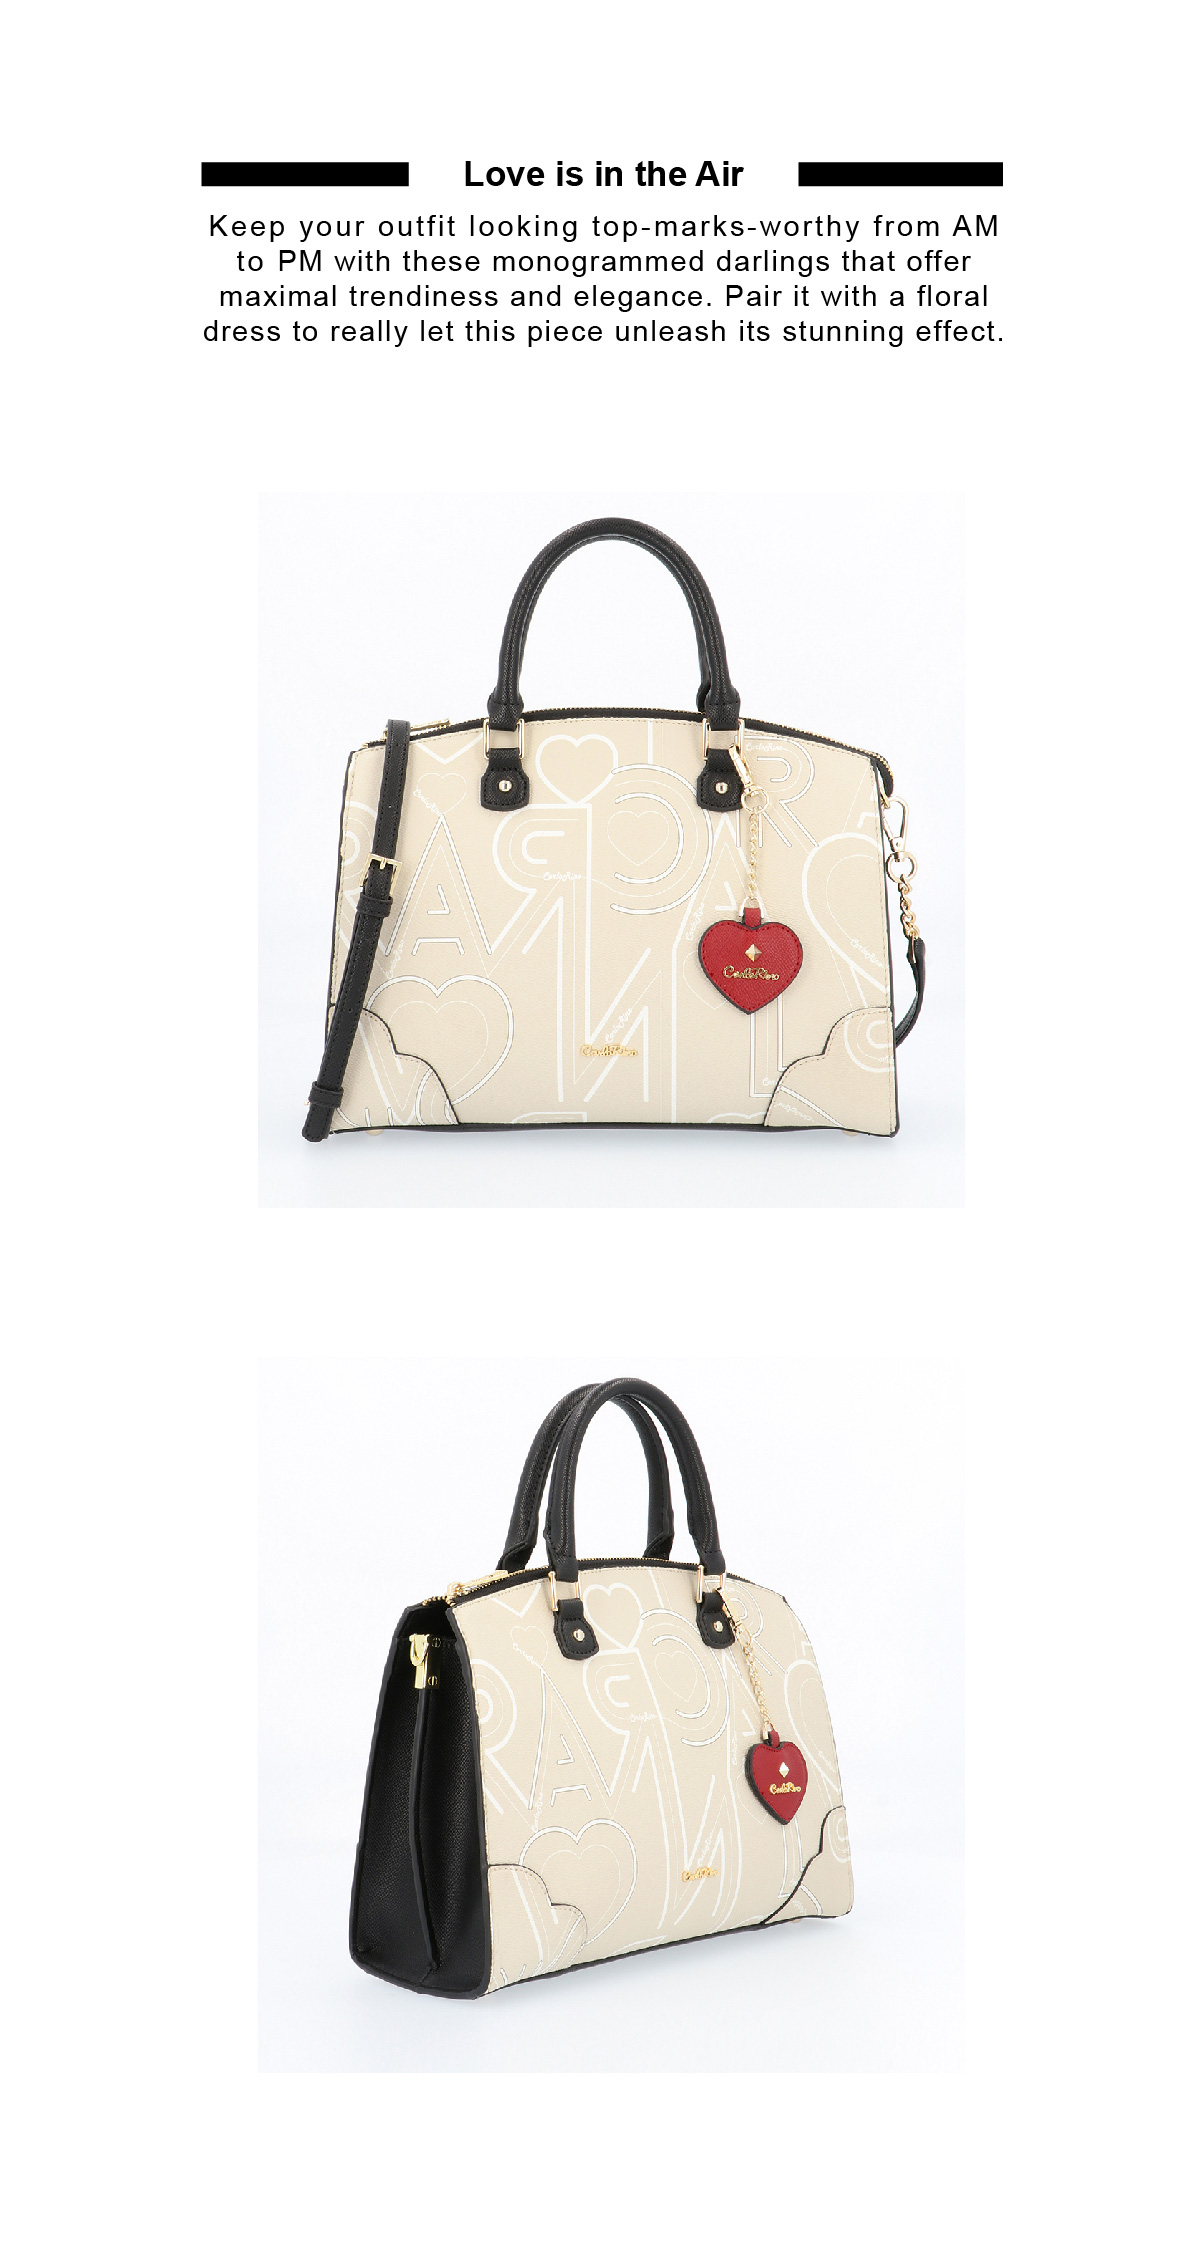 0304807G 006 21 02 - Love is in the Air Top Handle Tote